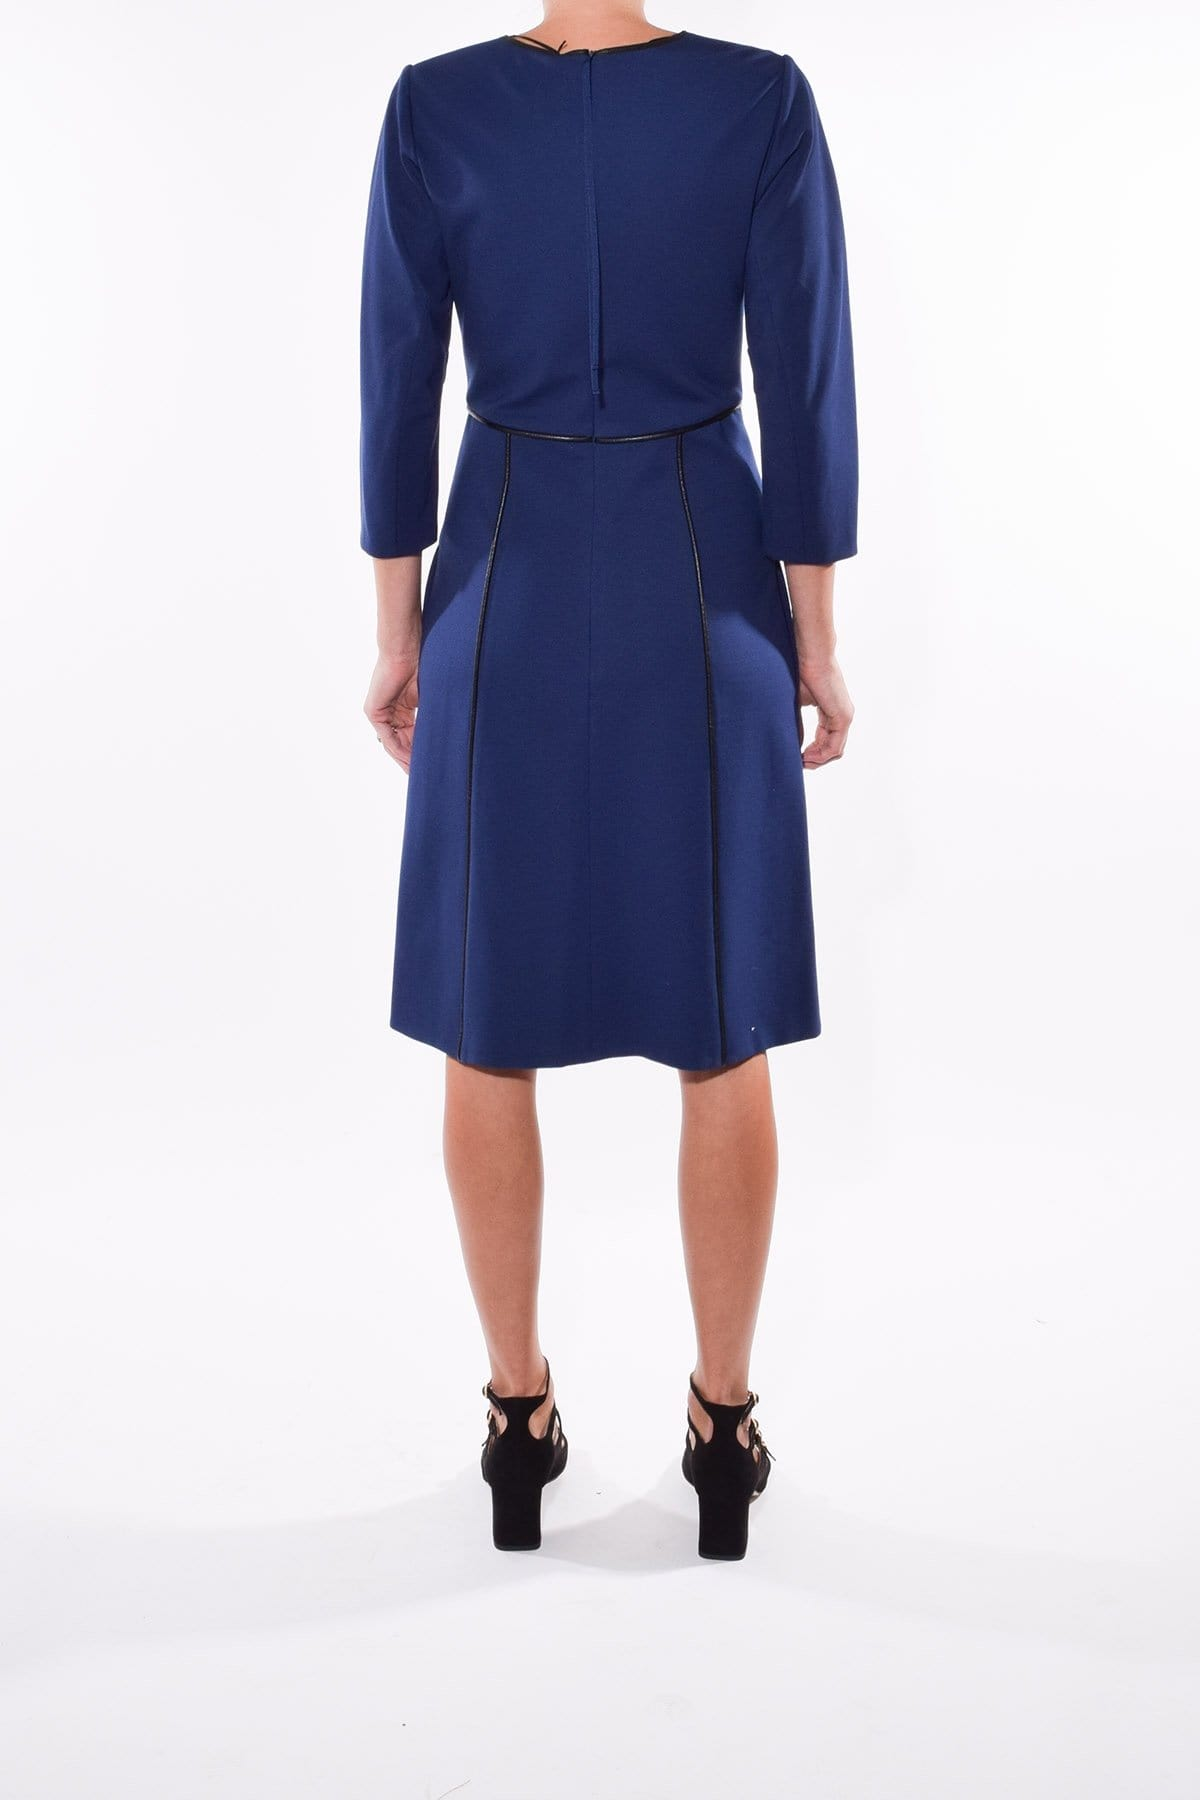 V-neck Piping Pocketed Elbow Length Sleeves Dress